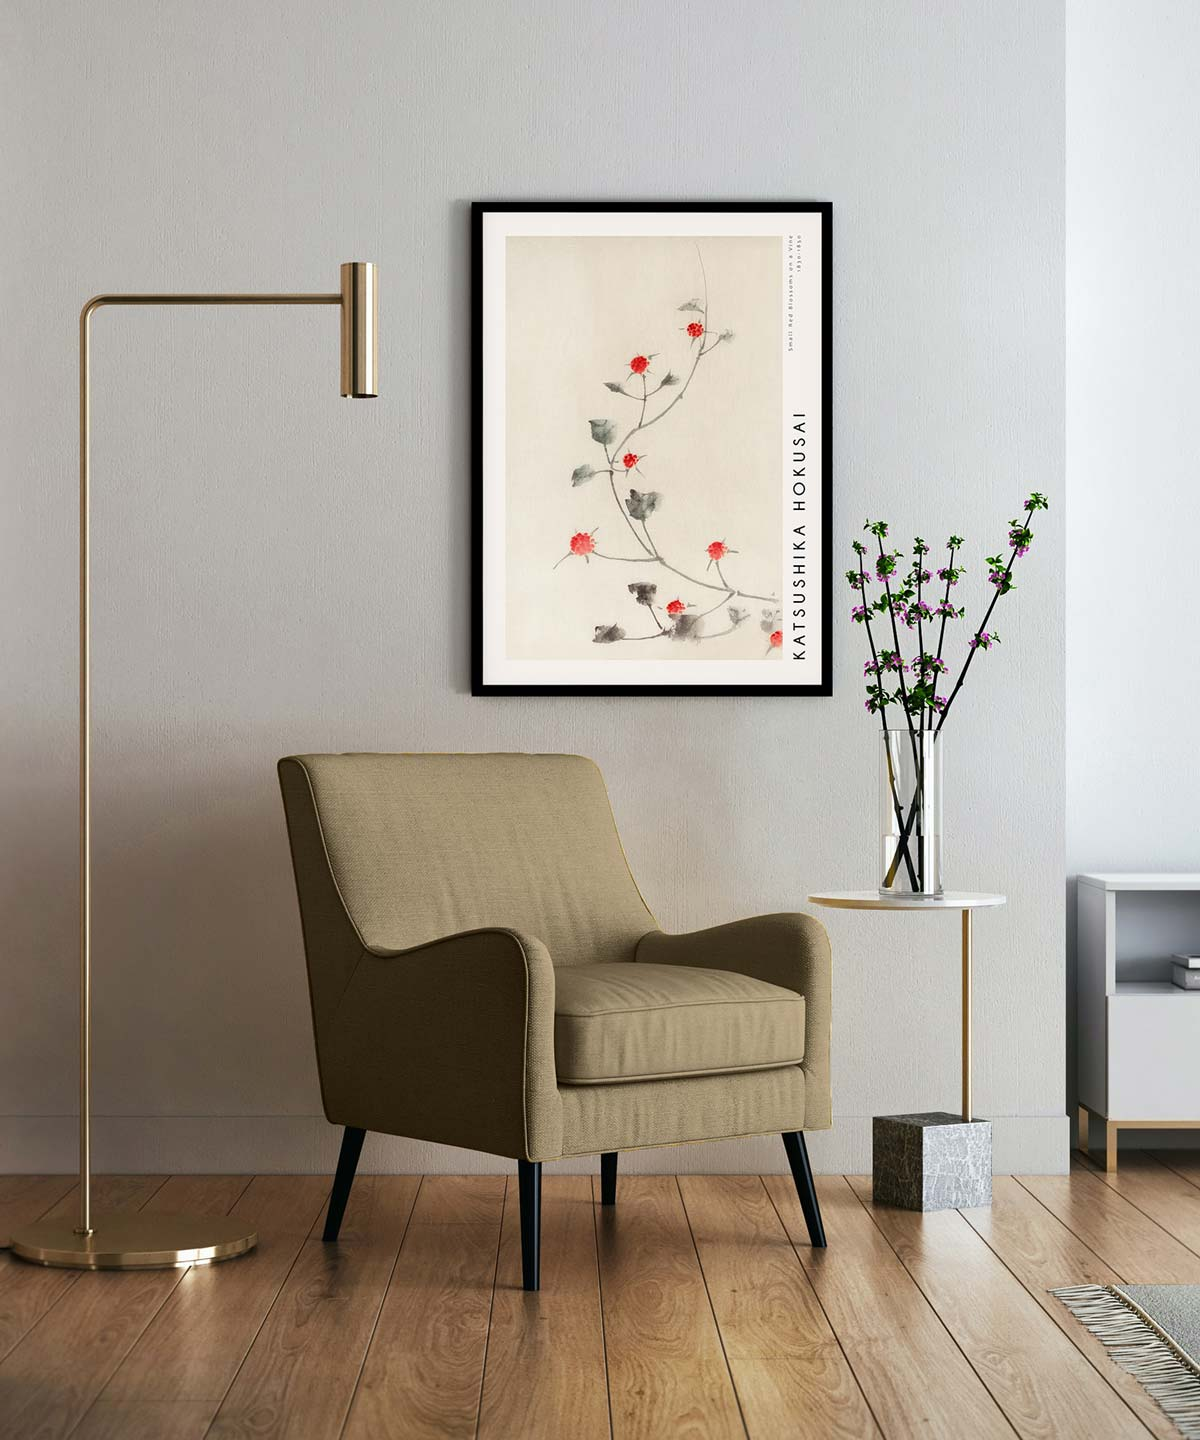 Hokusai-Small-Red-Blossoms-on-a-Vine-Poster-Black-Framed-on-Wall-Duwart